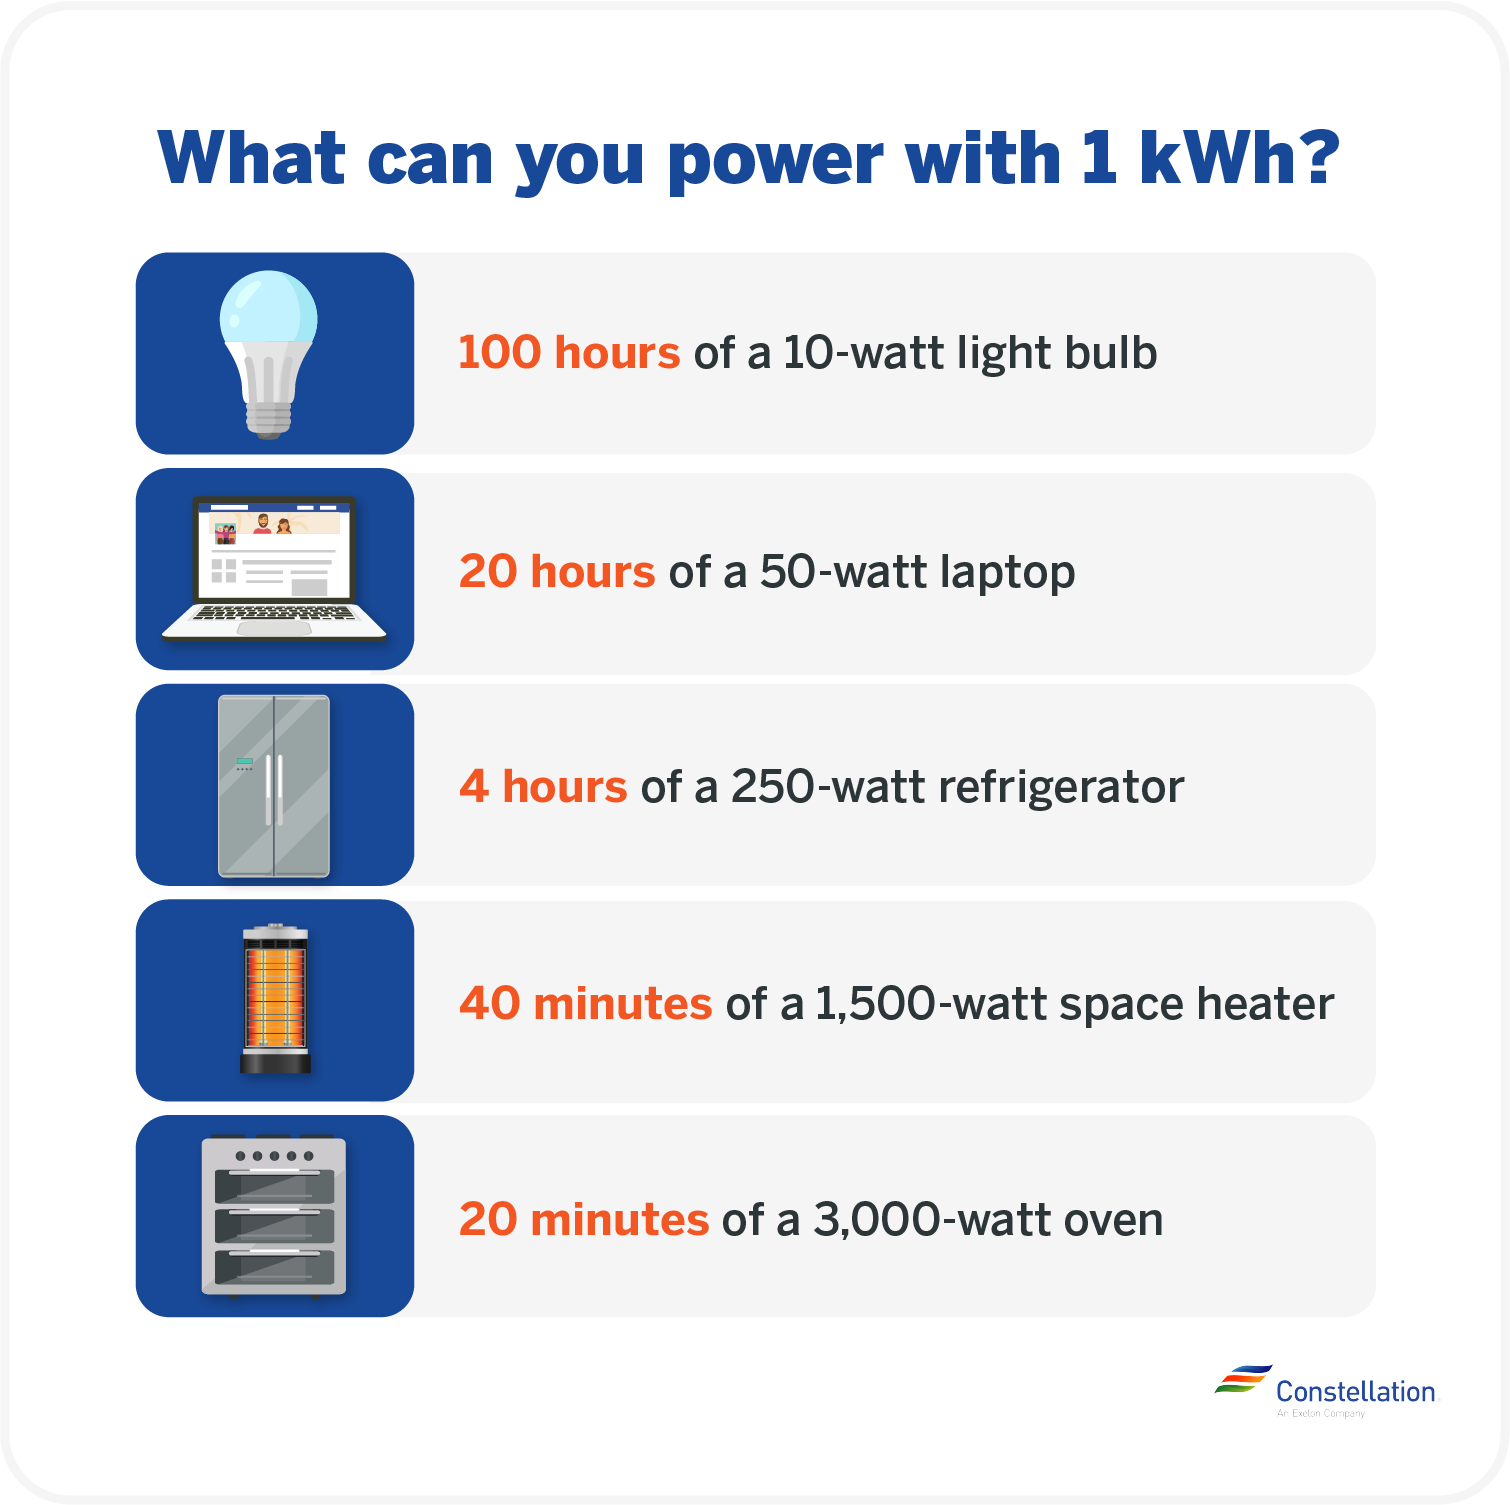 What can you power with 1 kWh?